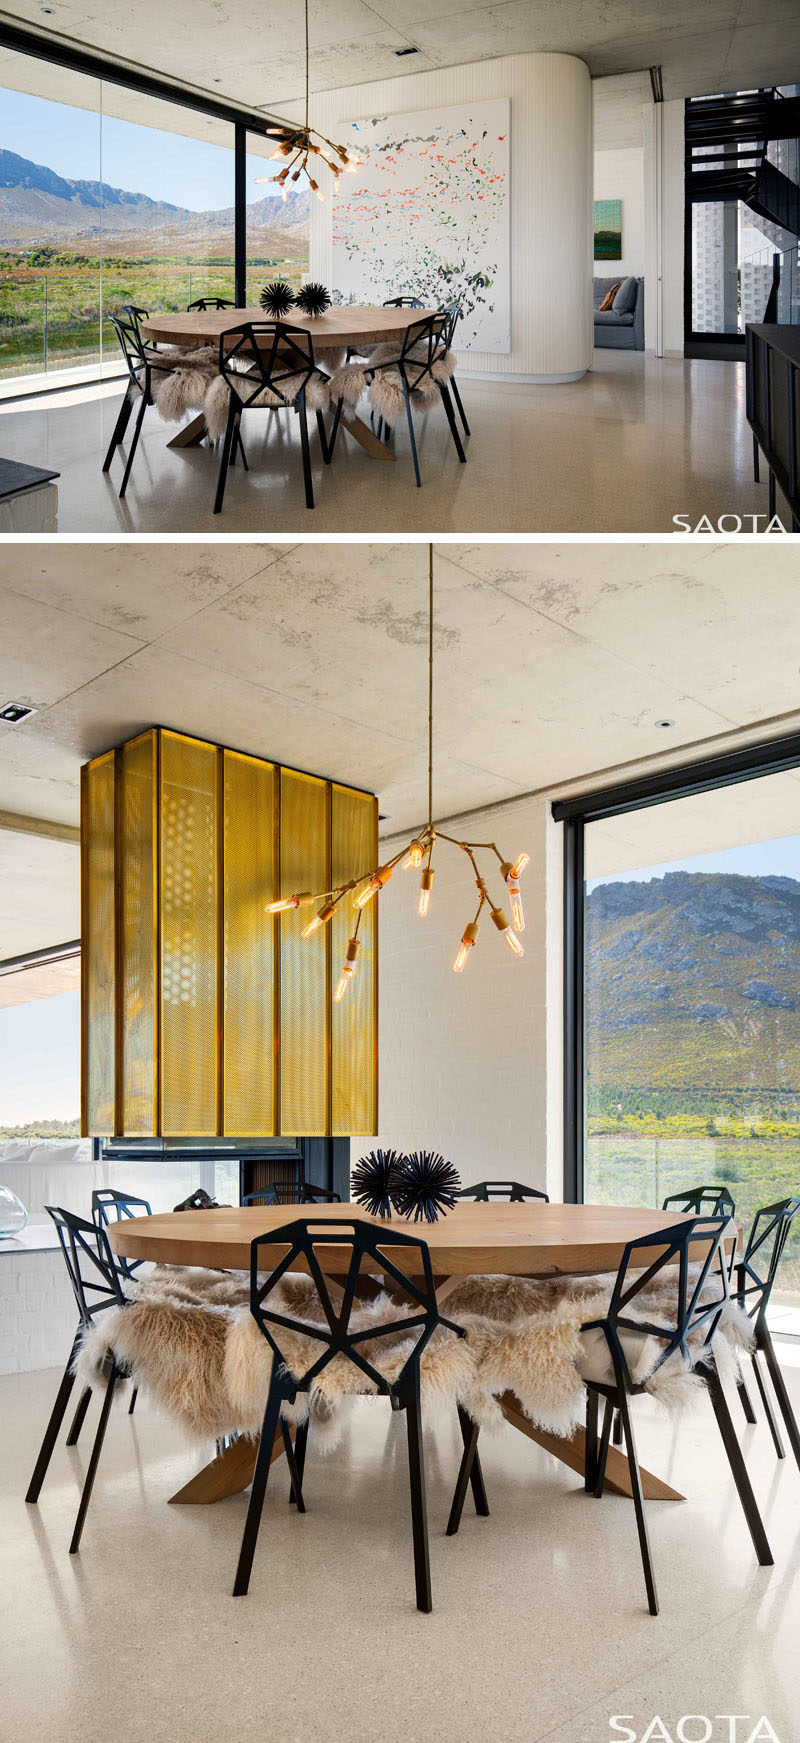 This modern house has a fireplace with punched brass cladding. Next to the fireplace is the dining room that features a custom-made table by James Mudge, accentuated by the Lindsey Adelman pendant light. Black Magis chairs surround the table and are softened with sheepskins throws. #Fireplace #ModernDiningRoom